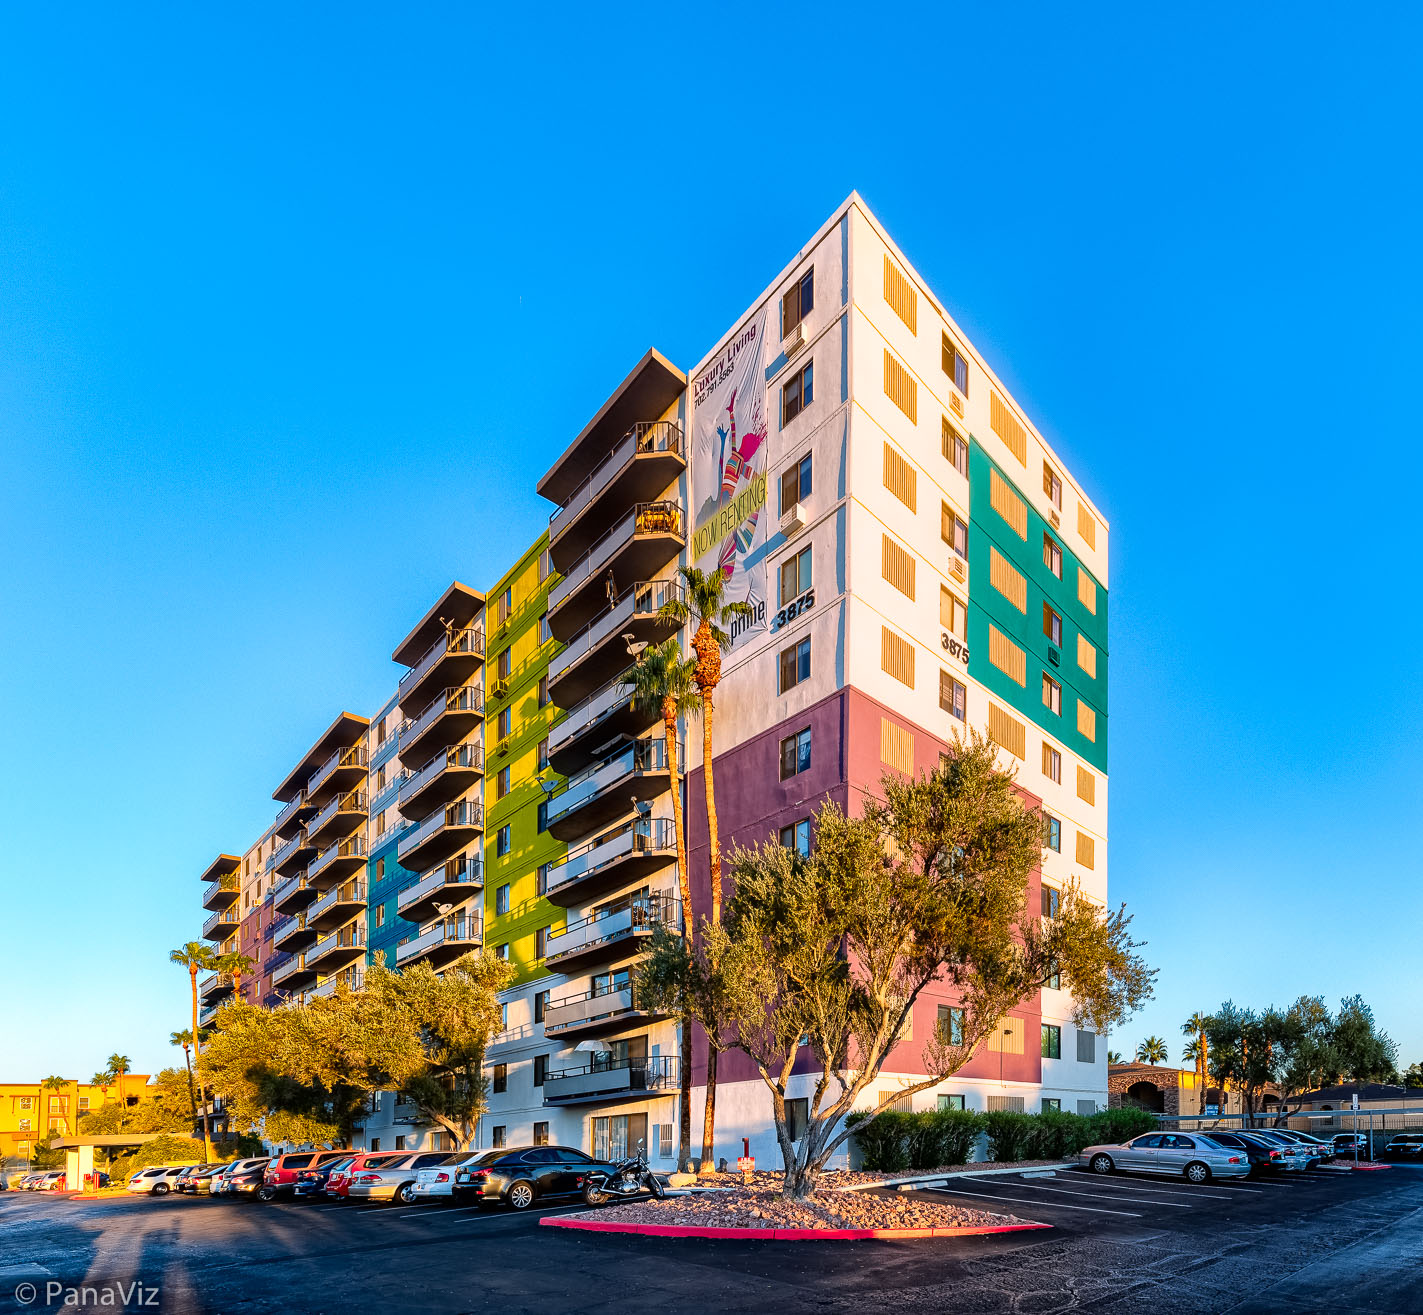 Nevada Commercial Real Estate (CRE) Photography